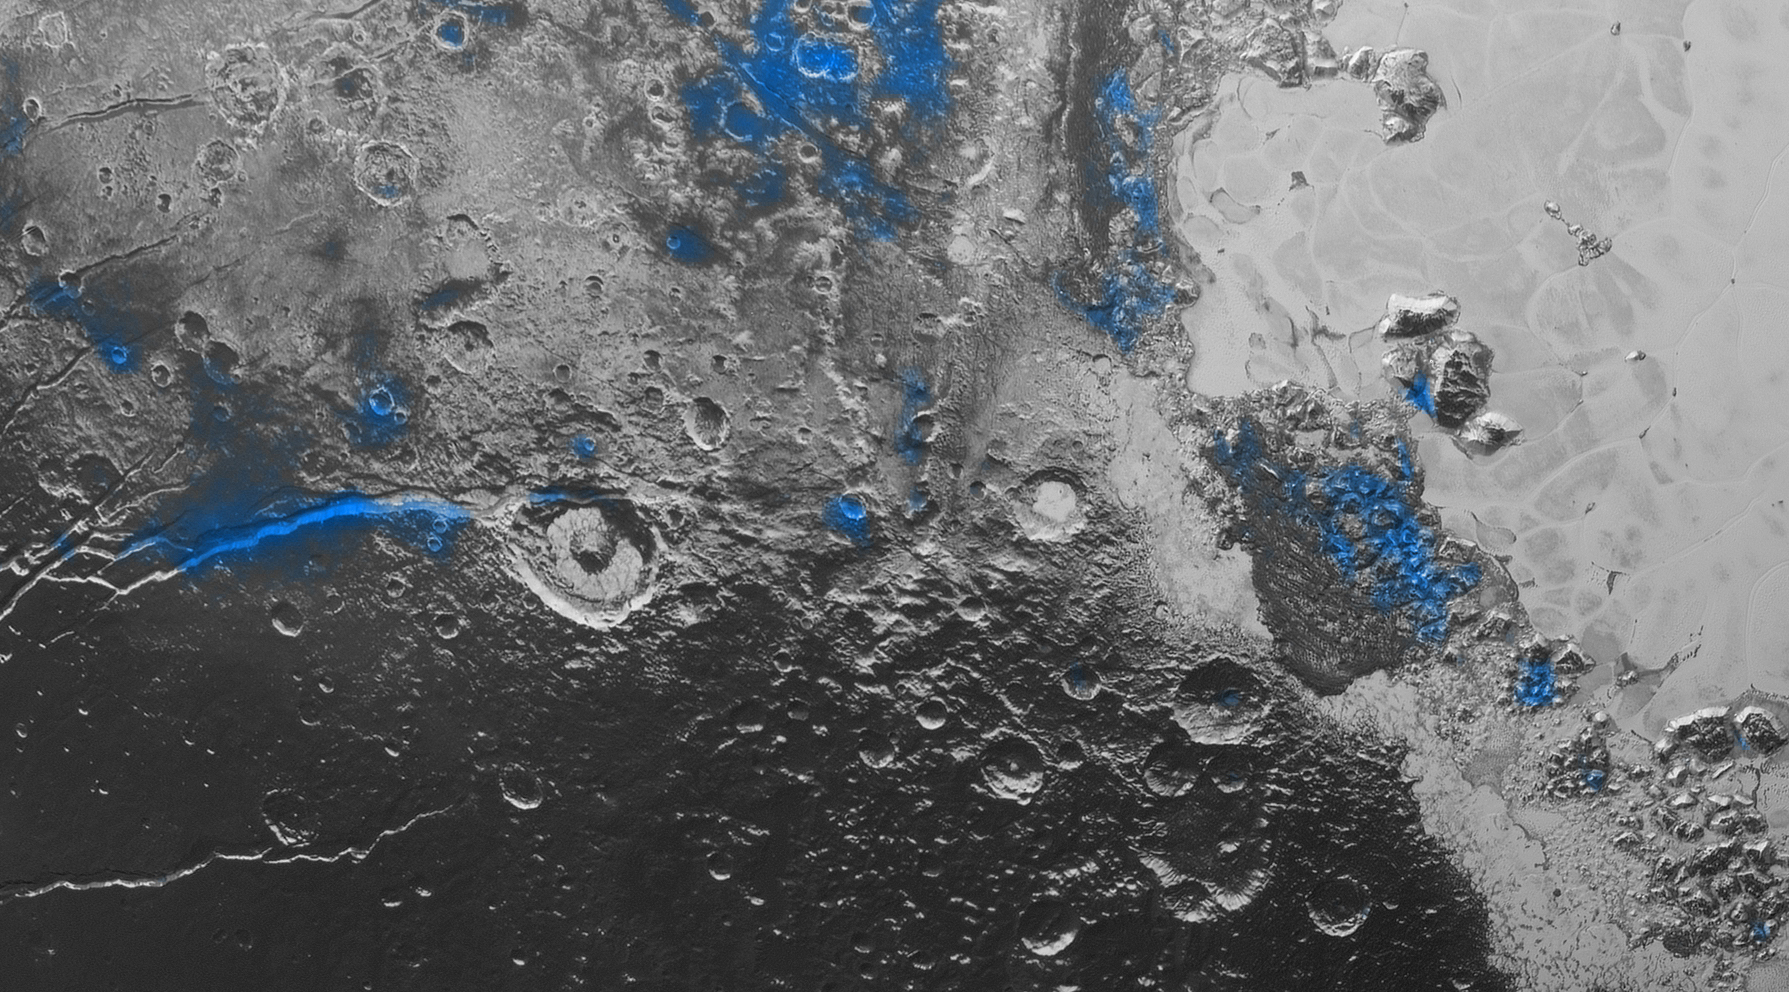 Photo of Image of Pluto with blue areas that represent the locations of exposed water ice